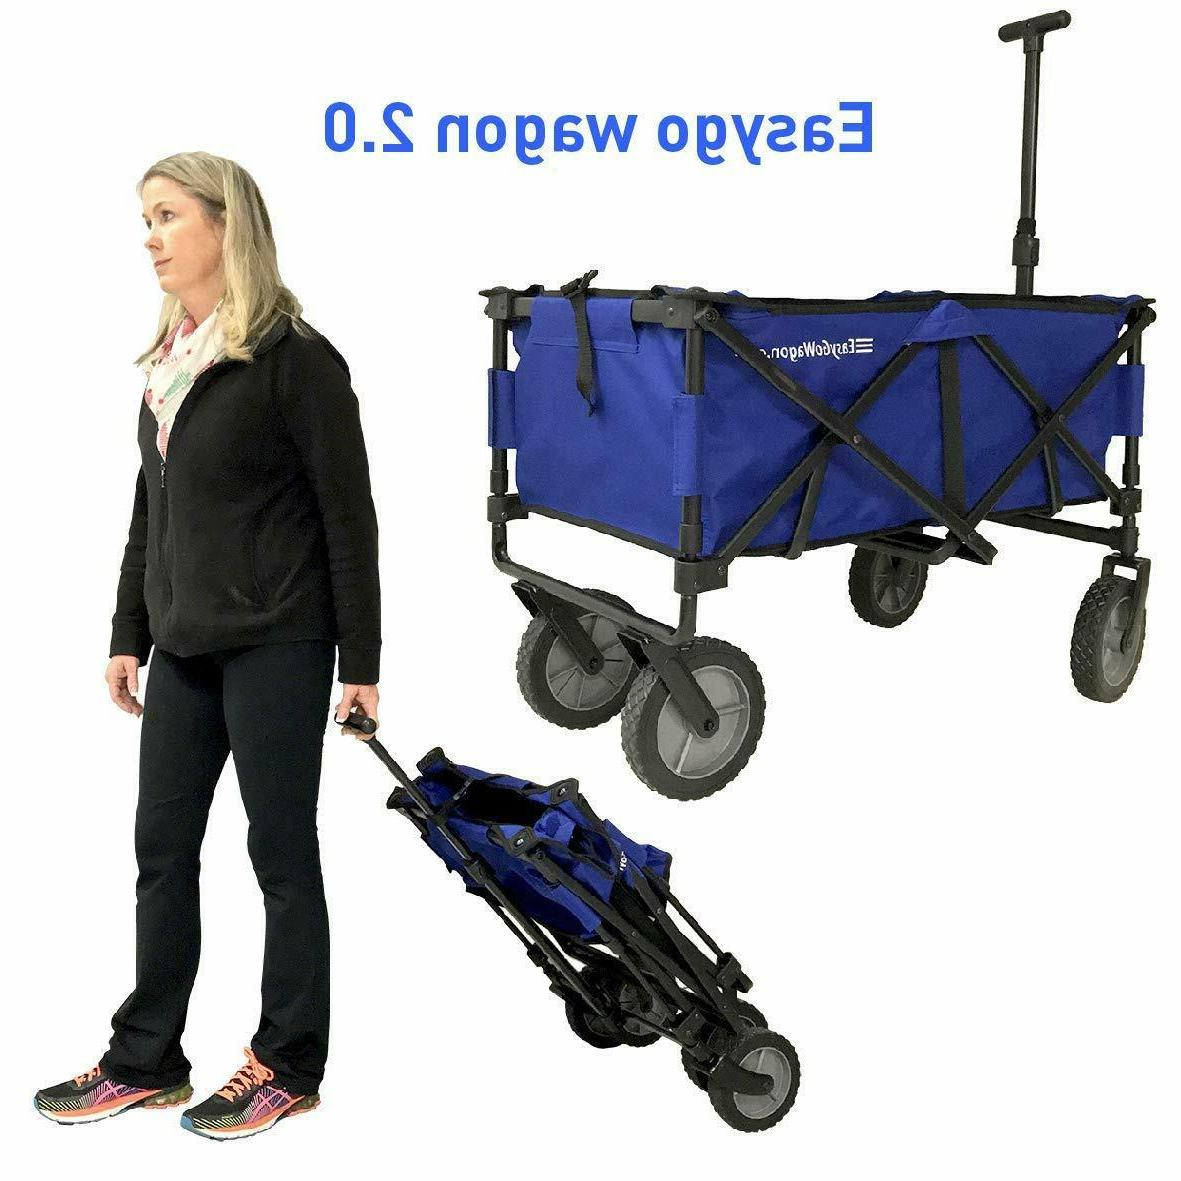 blue easygowagon 2 0 folding wagon collapsible